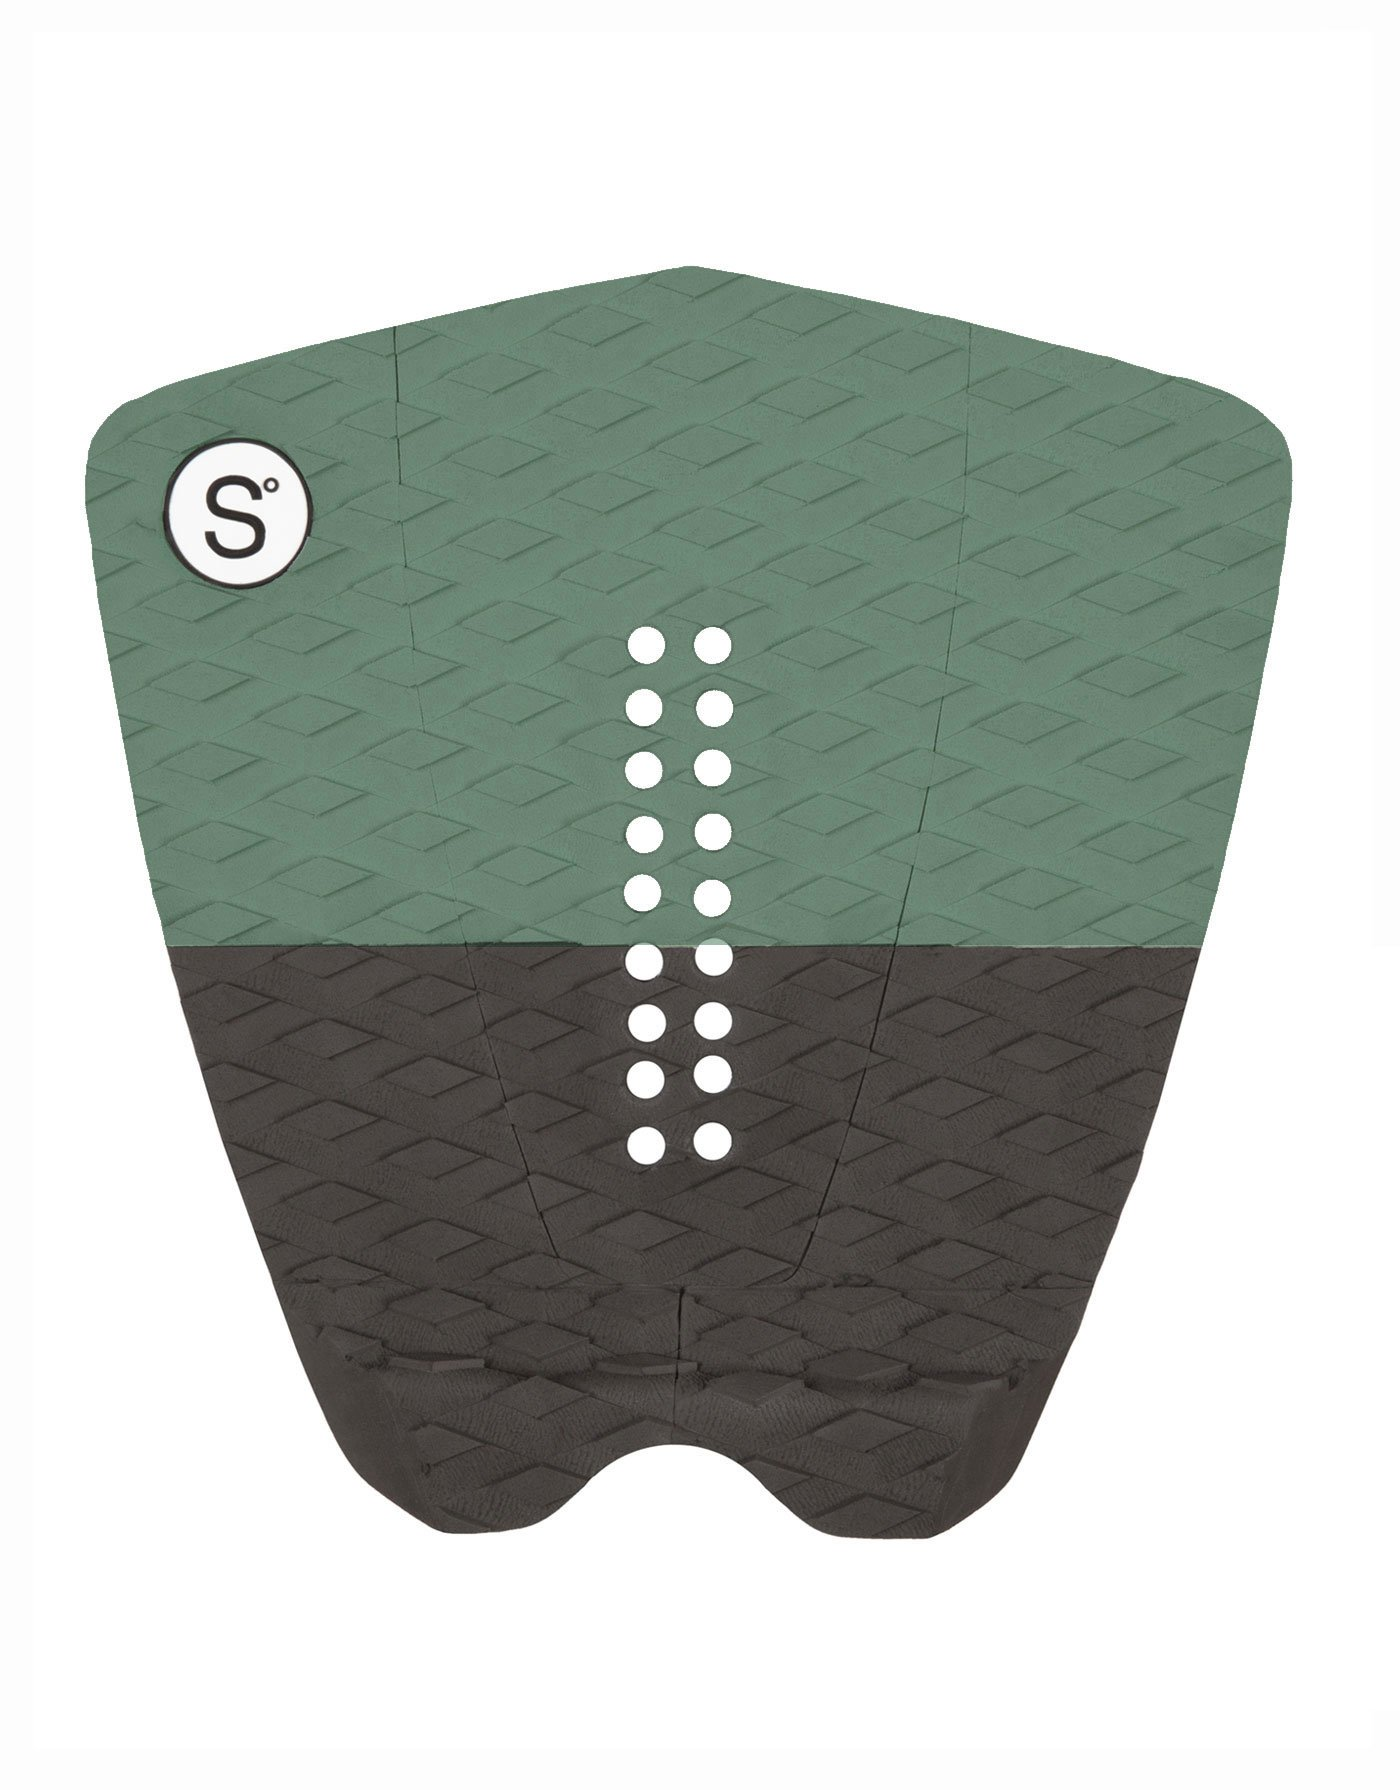 SYMPL Surfboard Traction - SLATE GREEN - Multiple Color Options (Slate Green/Charcoal) by Sympl Supply Co.